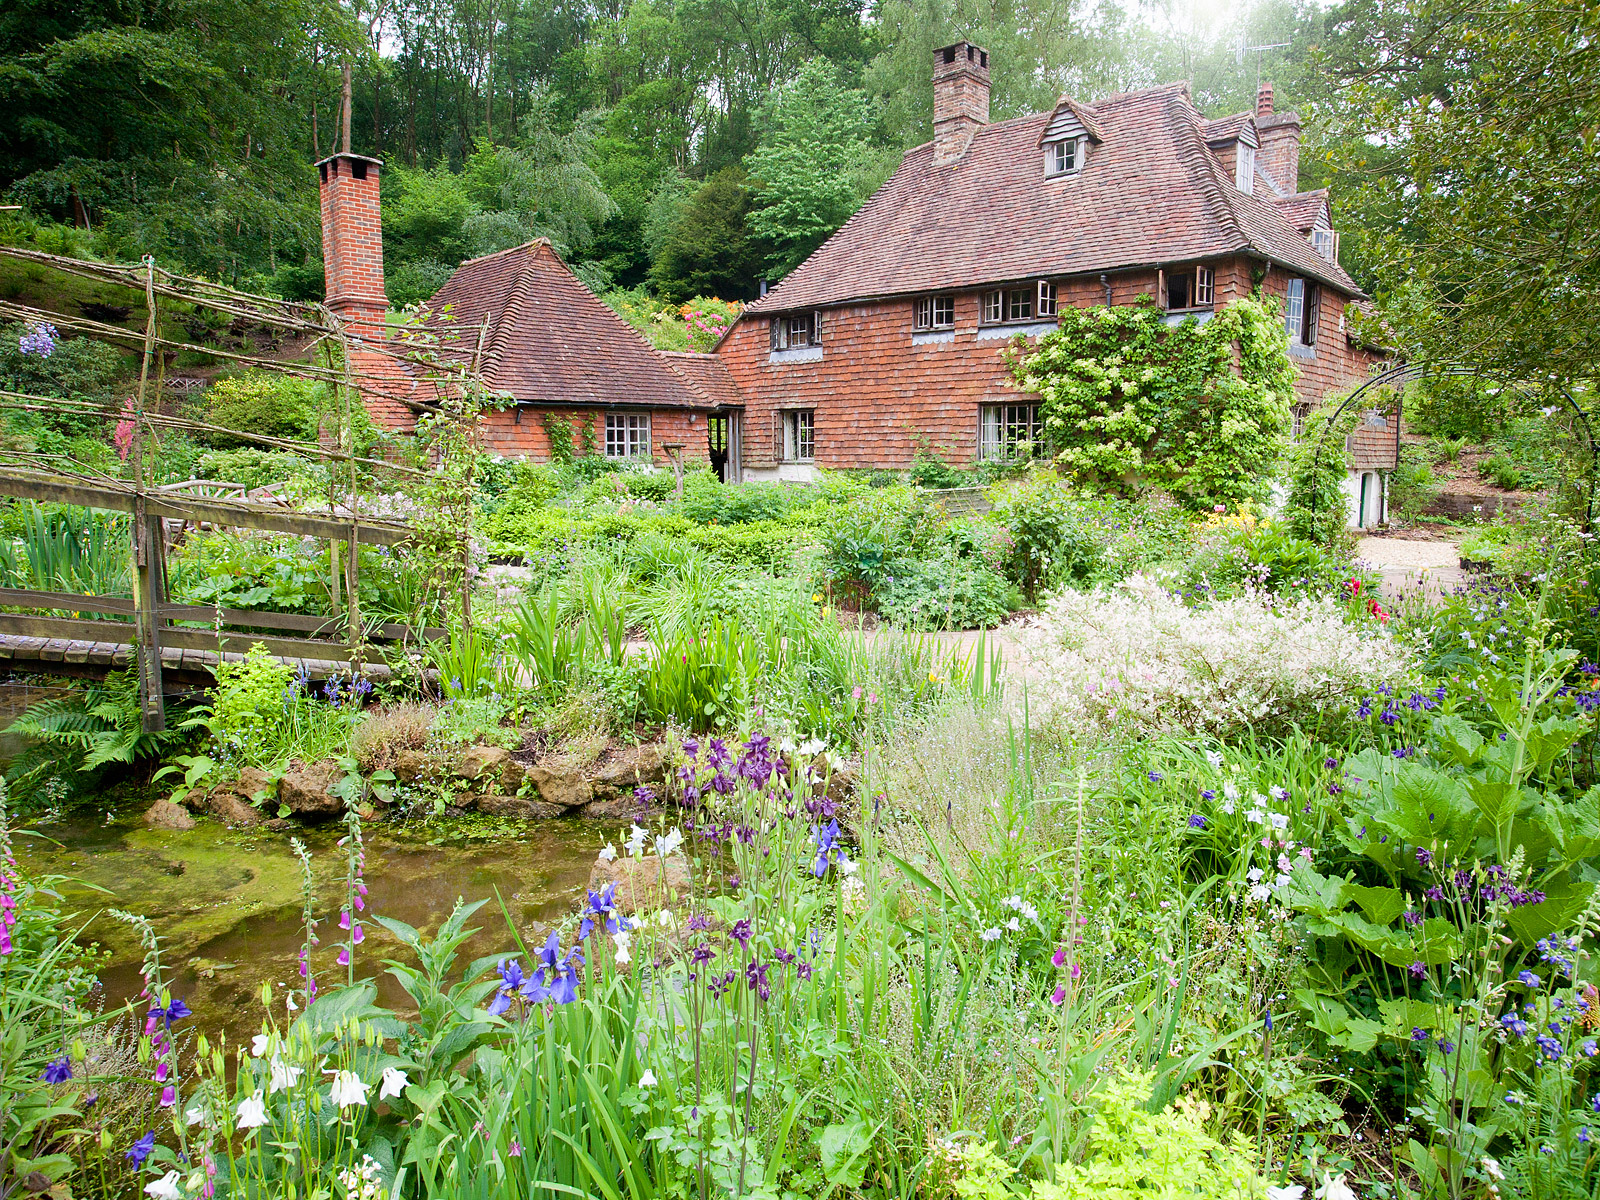 Copyhold Hollow Bed & Breakfast